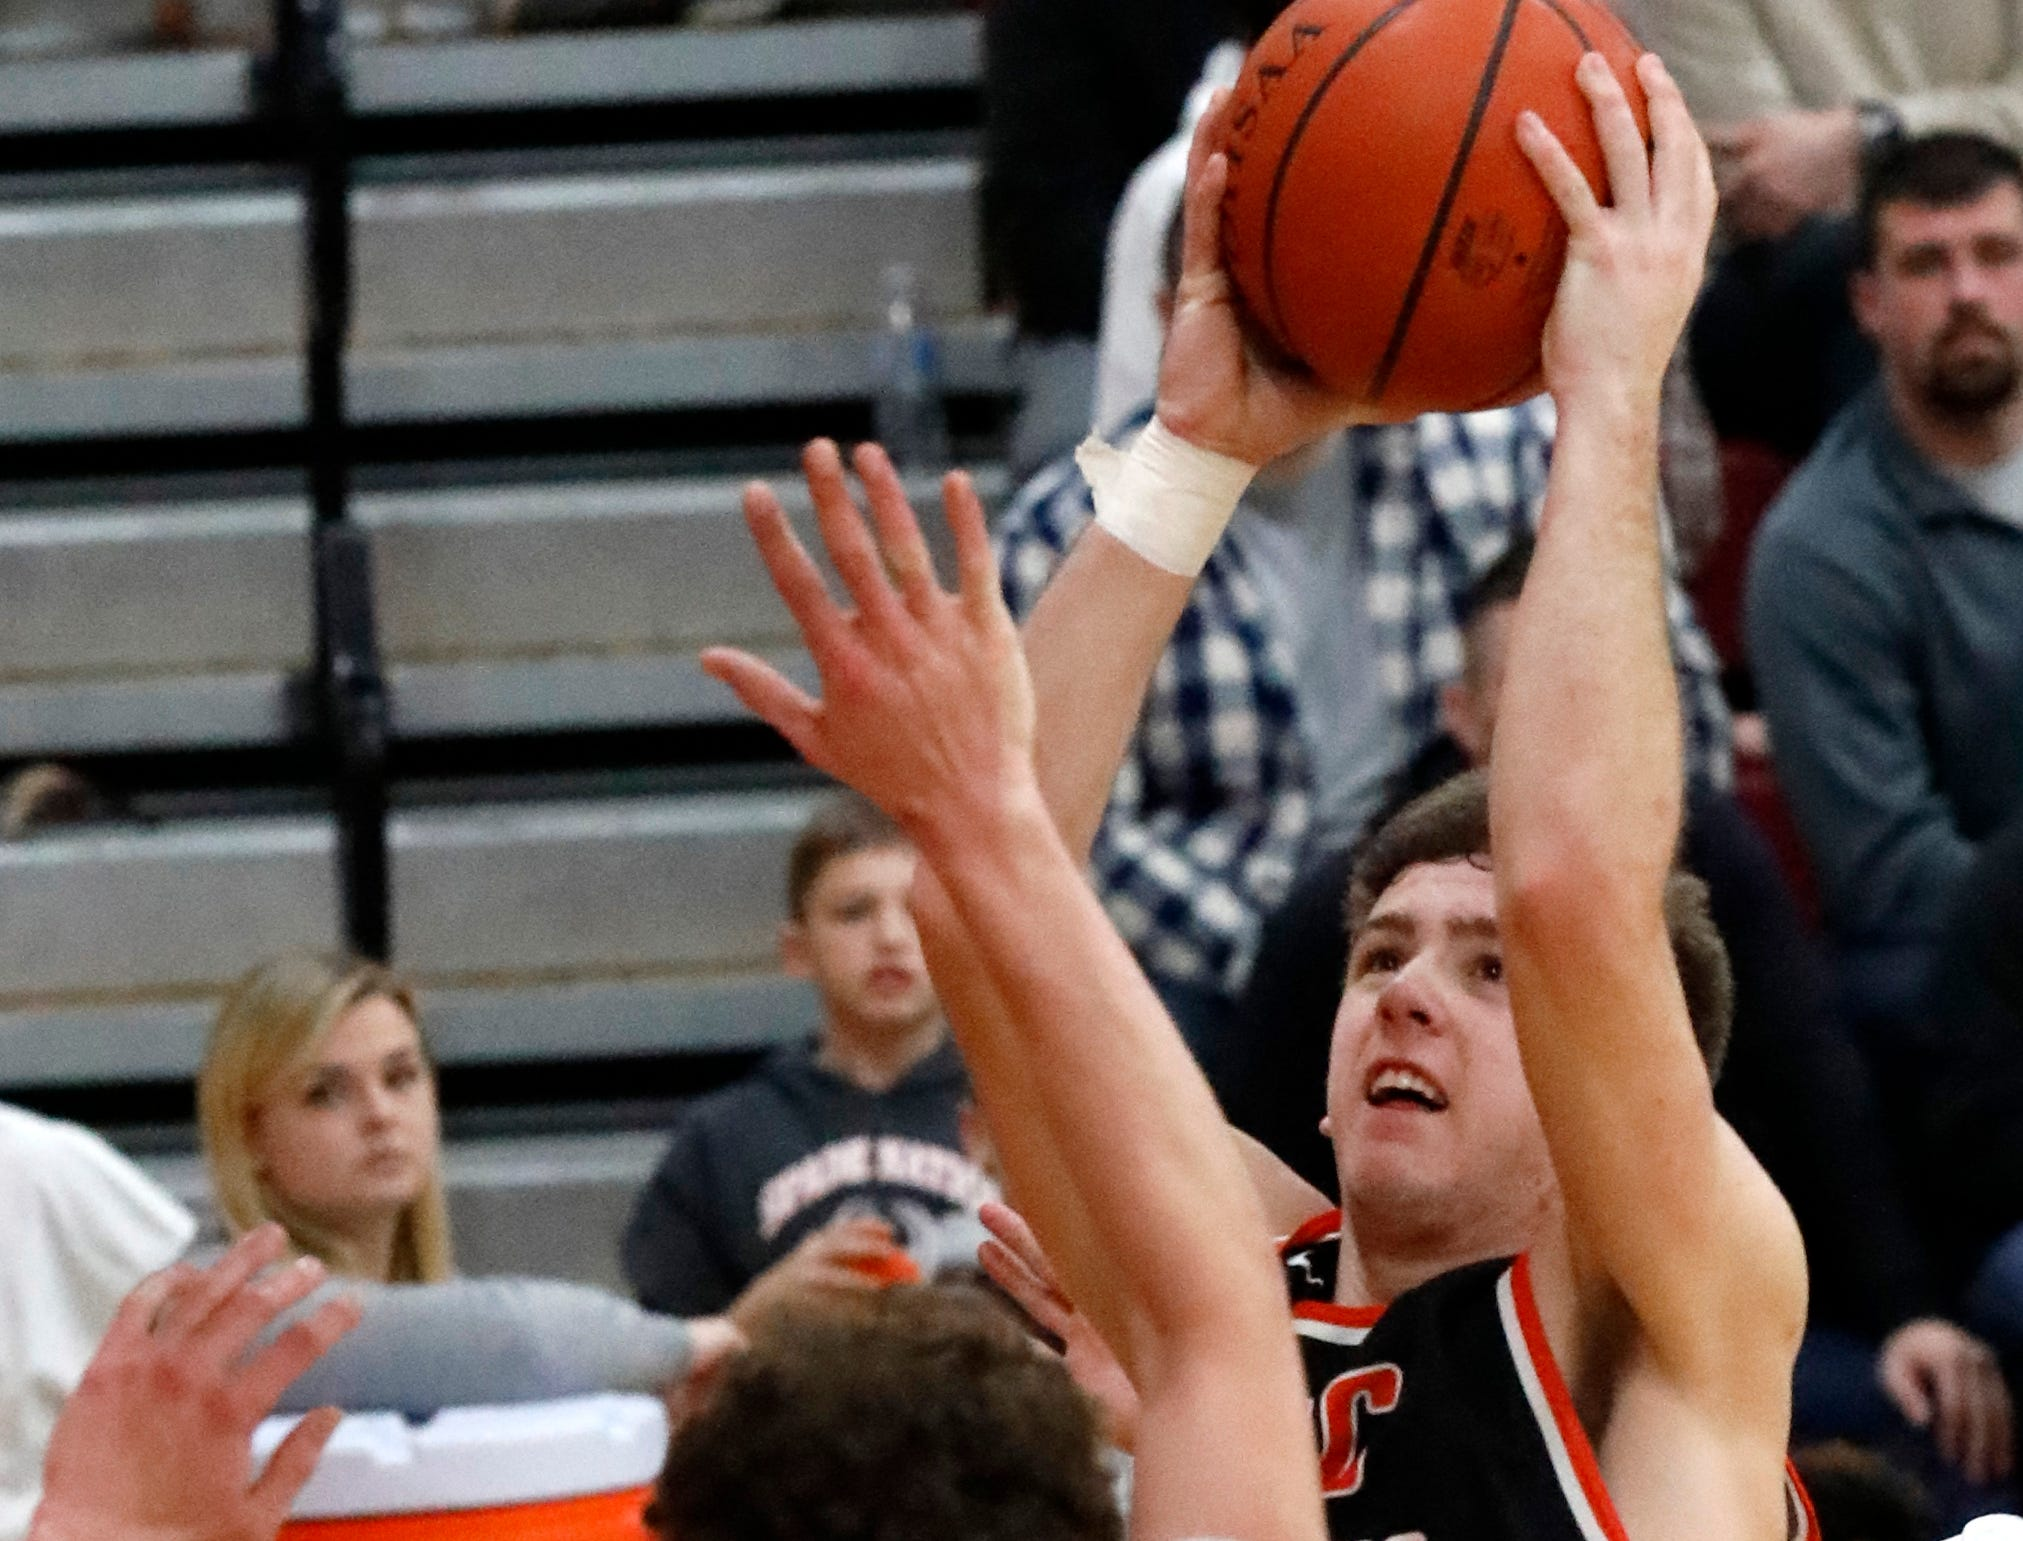 Amanda-Clearcreek's Will Riffle takes a shot during Friday night's game, Jan. 4, 2019, against Fairfield Union at Fairfield Union High School in Rushville. The Falcons defeated the Aces 54-49.